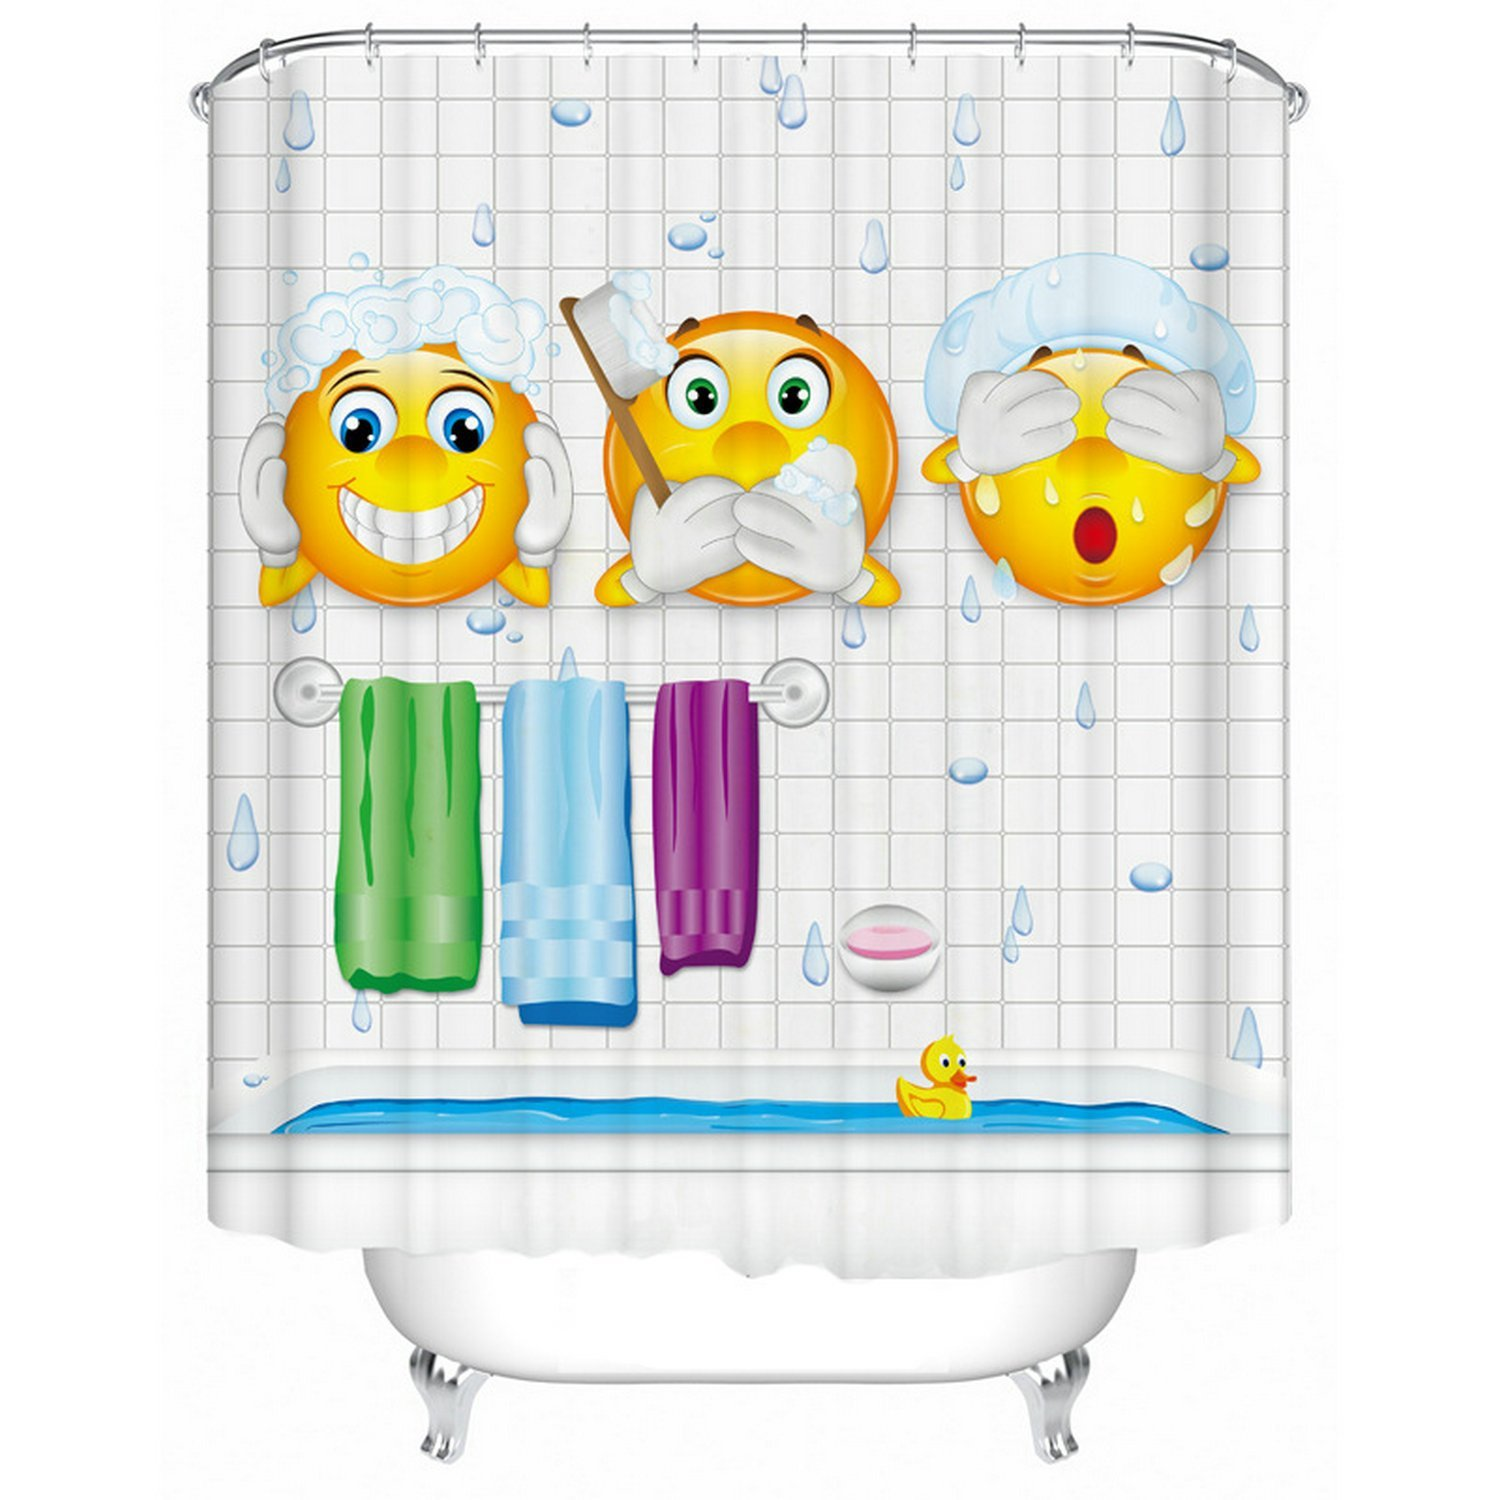 CHARMHOME Cartoon Expression Design Bathroom Shower